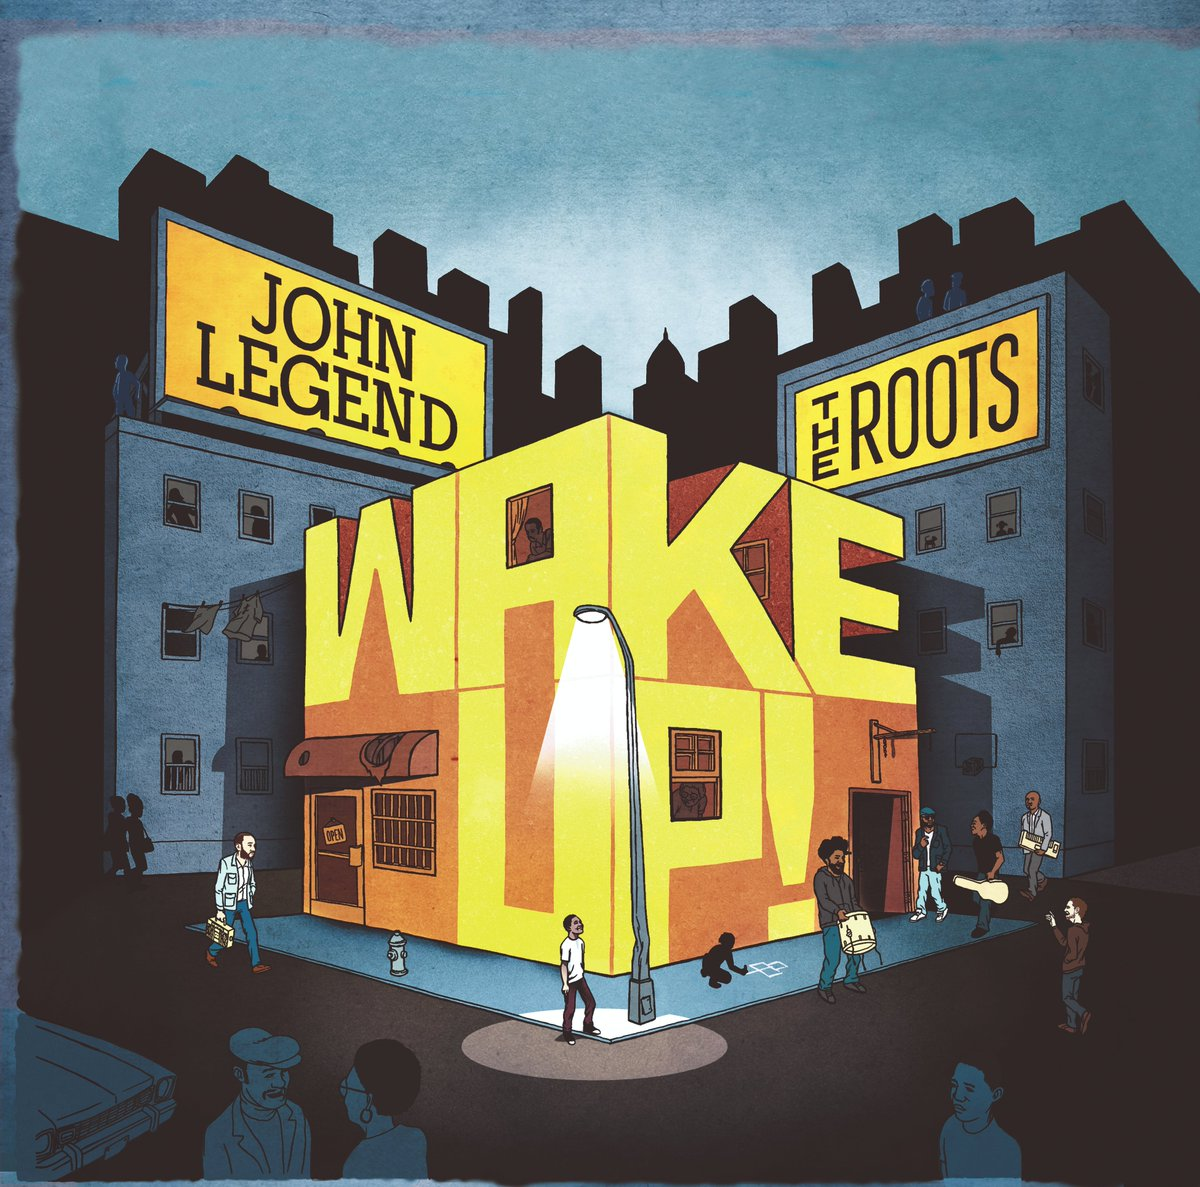 Ten years ago today, I released a special album with @TheRoots called WAKE UP!  We covered songs of protest, justice, peace and love for humankind, songs originally made popular by artists such as Marvin Gaye, Nina Simone, Bill Withers and more. https://t.co/KgxlhHFqVy